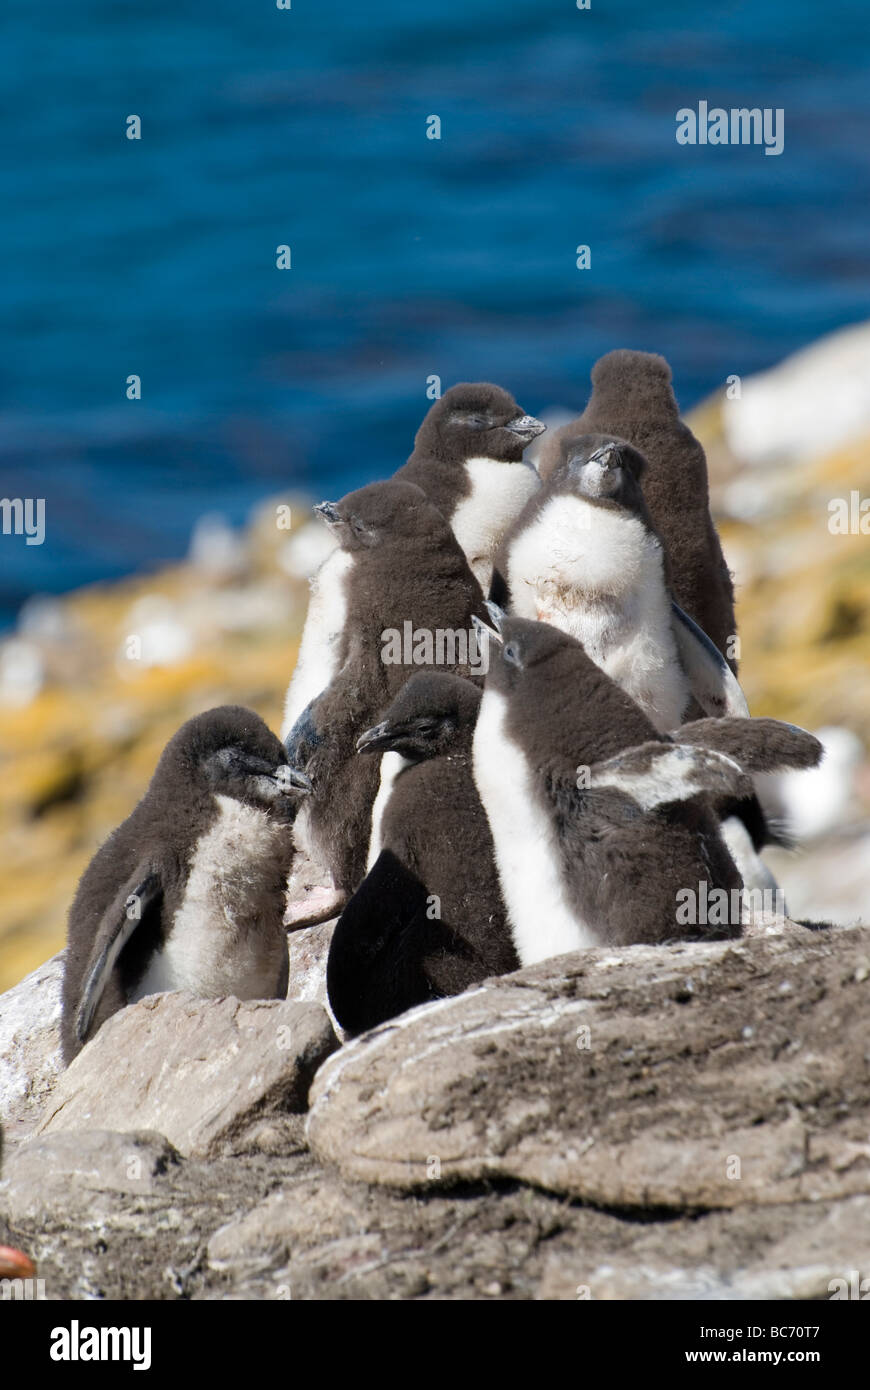 Southern Rockhopper Penguin chicks, Eudyptes chrysocome. Also known as Imperial Shag, King Cormorant, King Shag - Stock Image